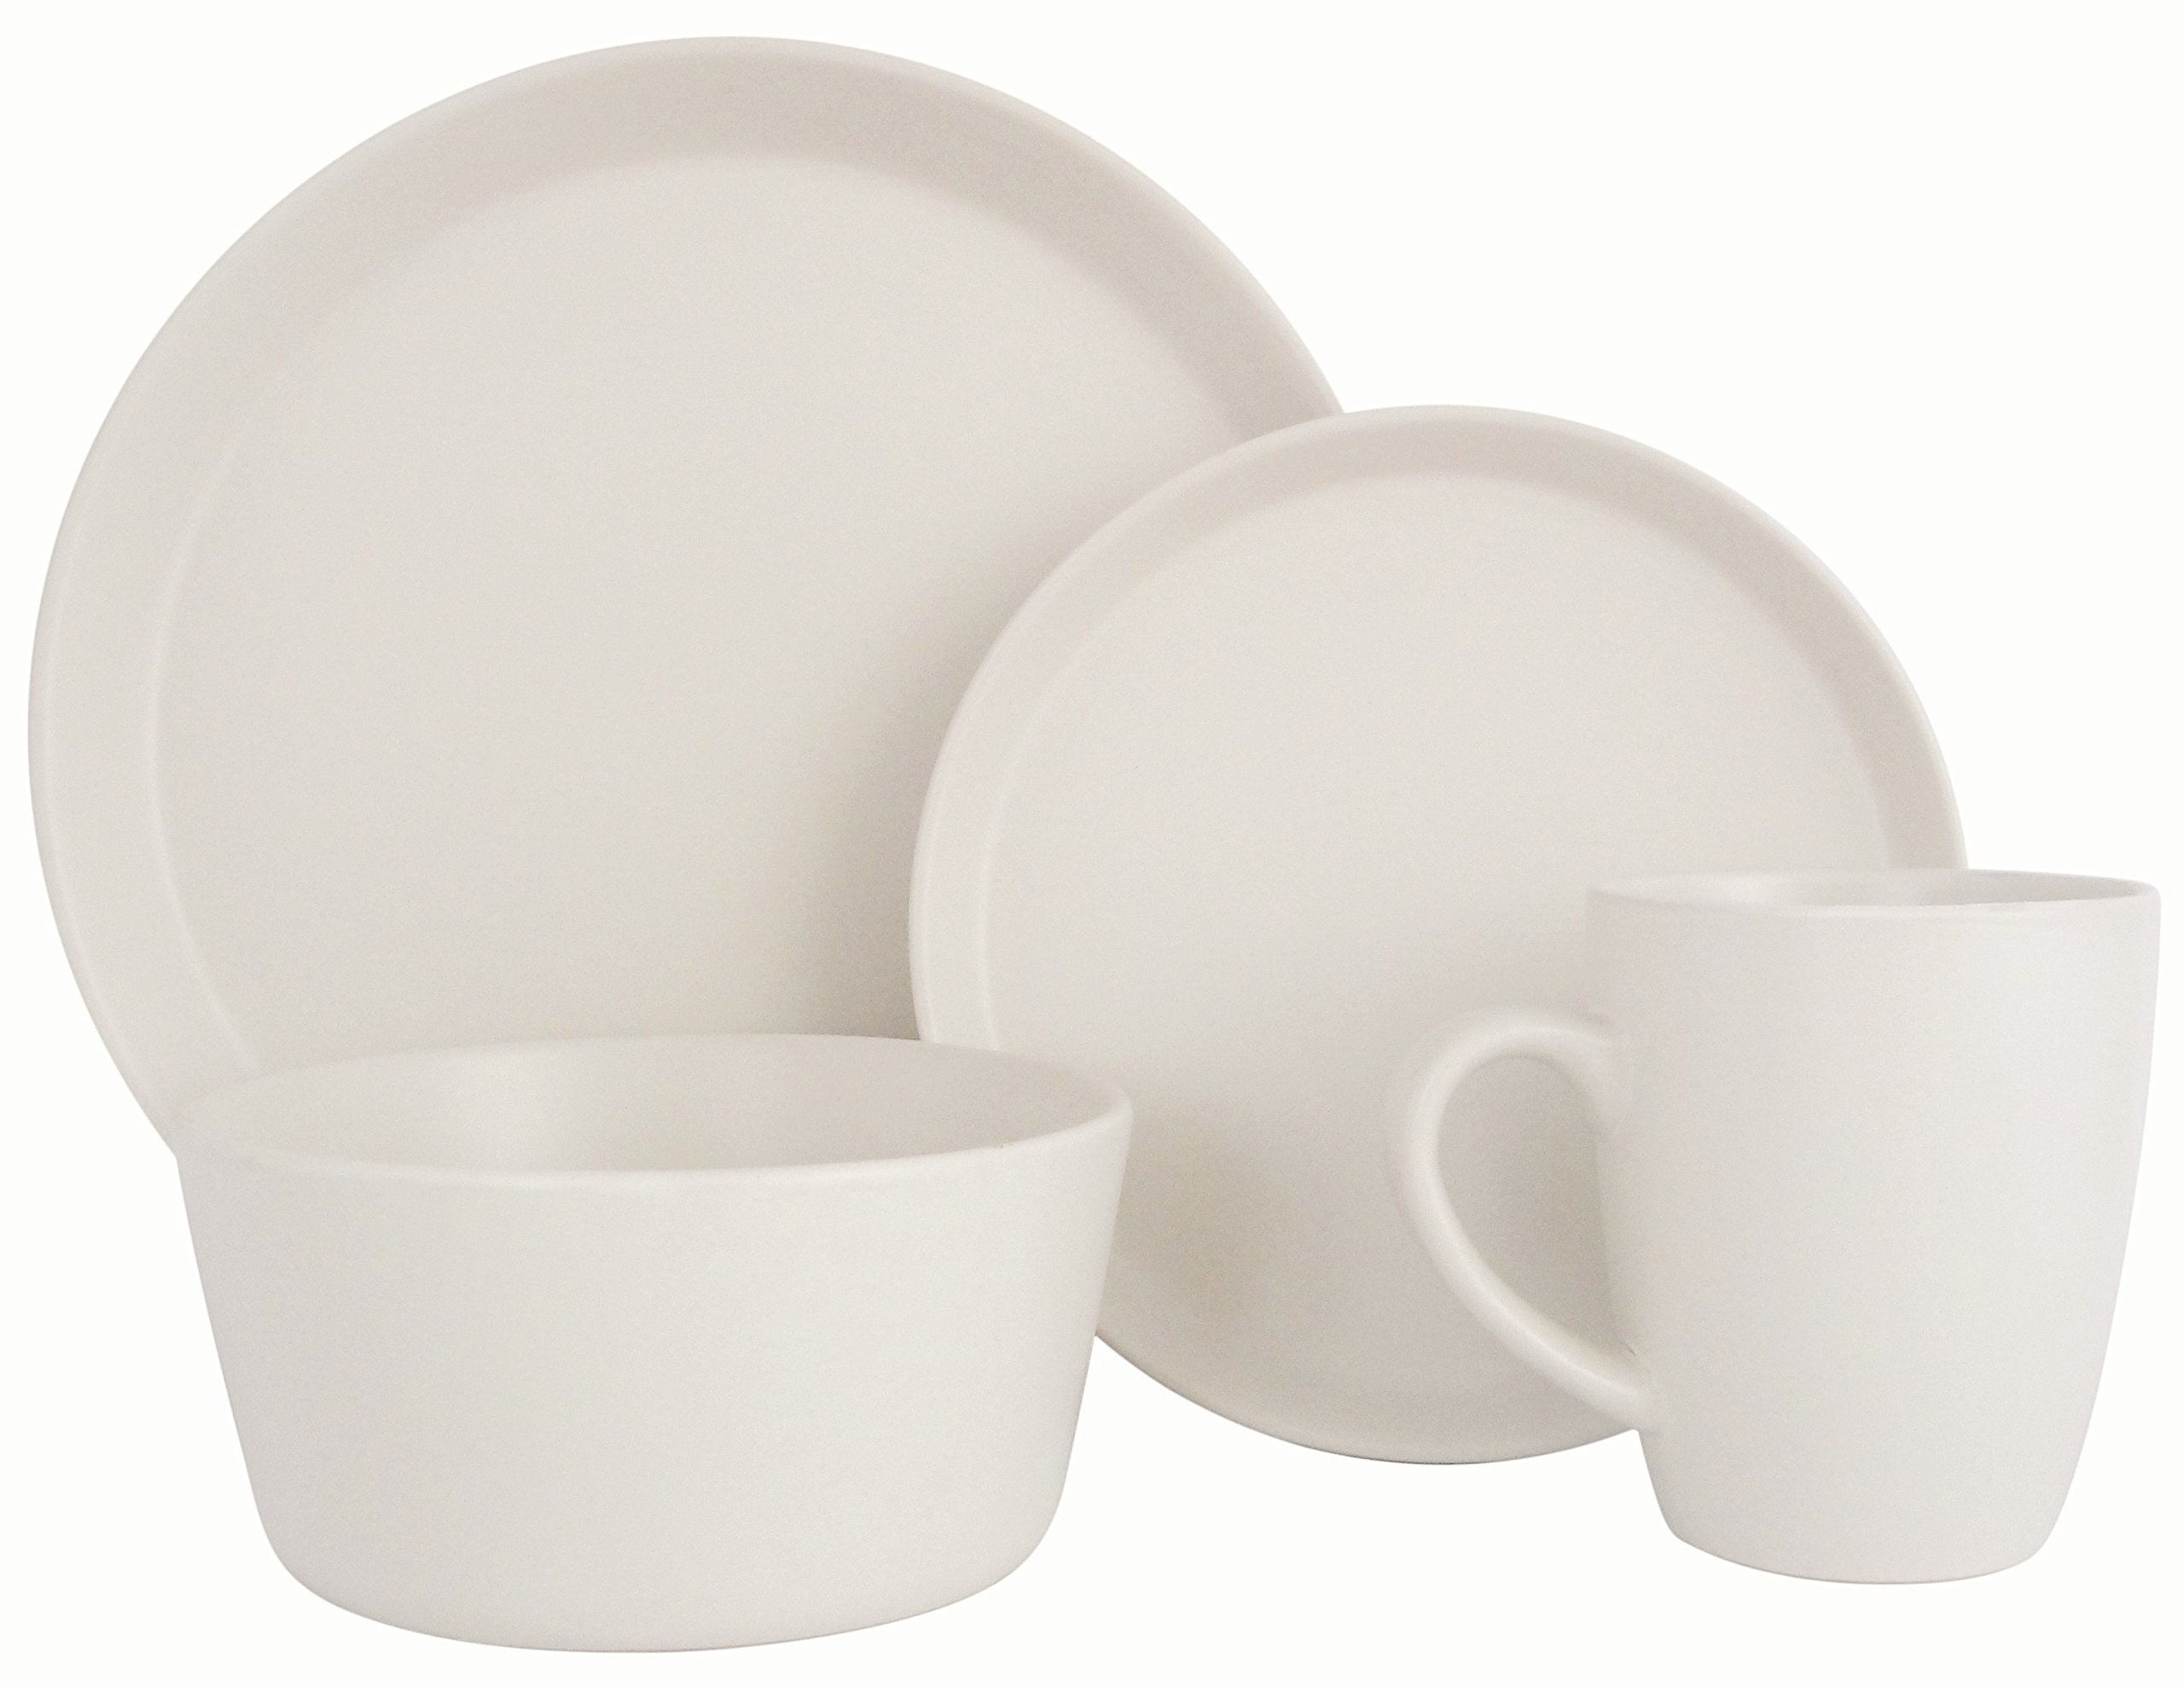 Melange Stoneware 16-Piece Dinnerware Set (Moderno White) | Service for 4| Microwave, Dishwasher & Oven Safe | Dinner Plate, Salad Plate, Soup Bowl & Mug (4 Each)